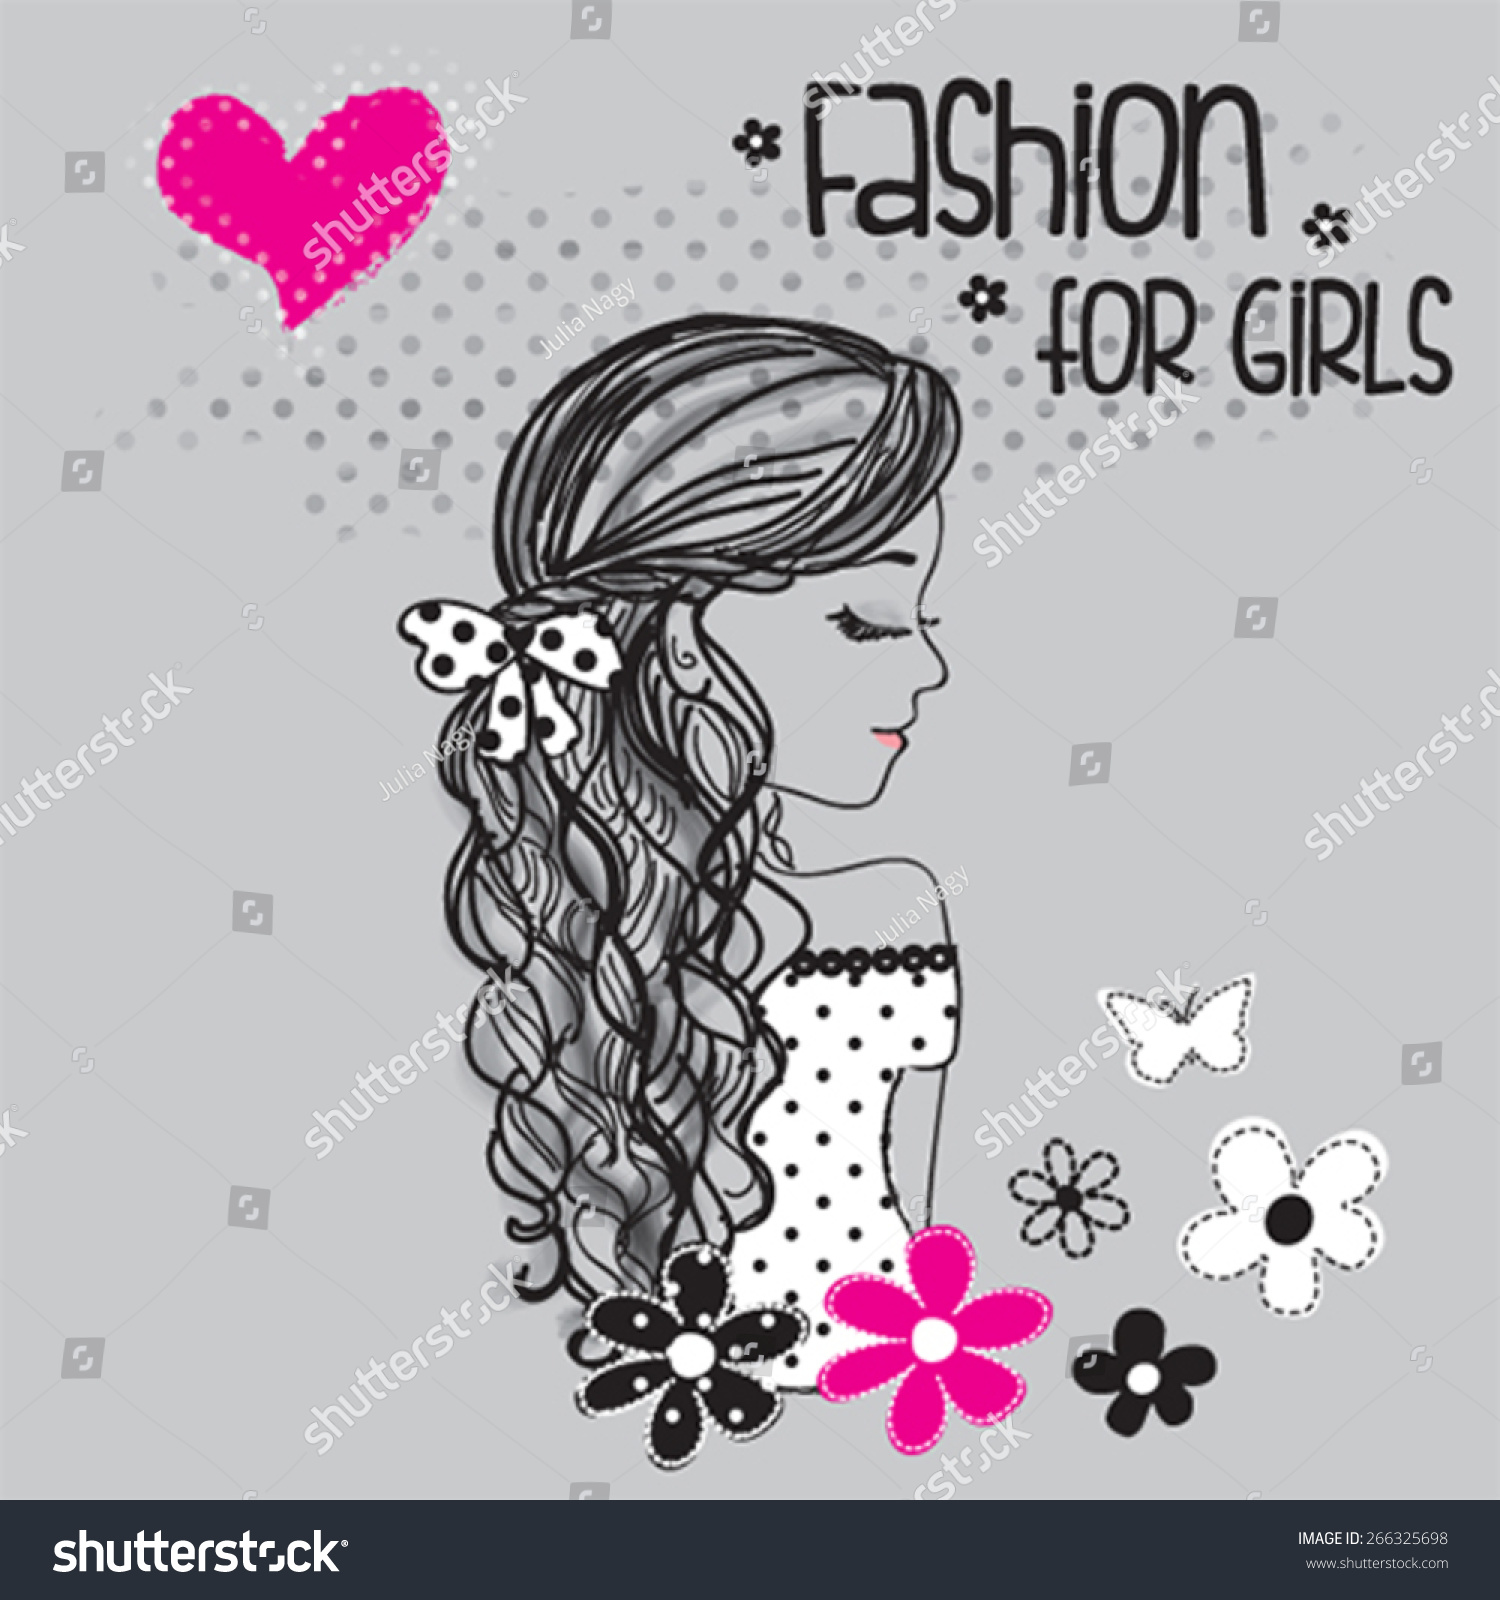 Shirt design in girl